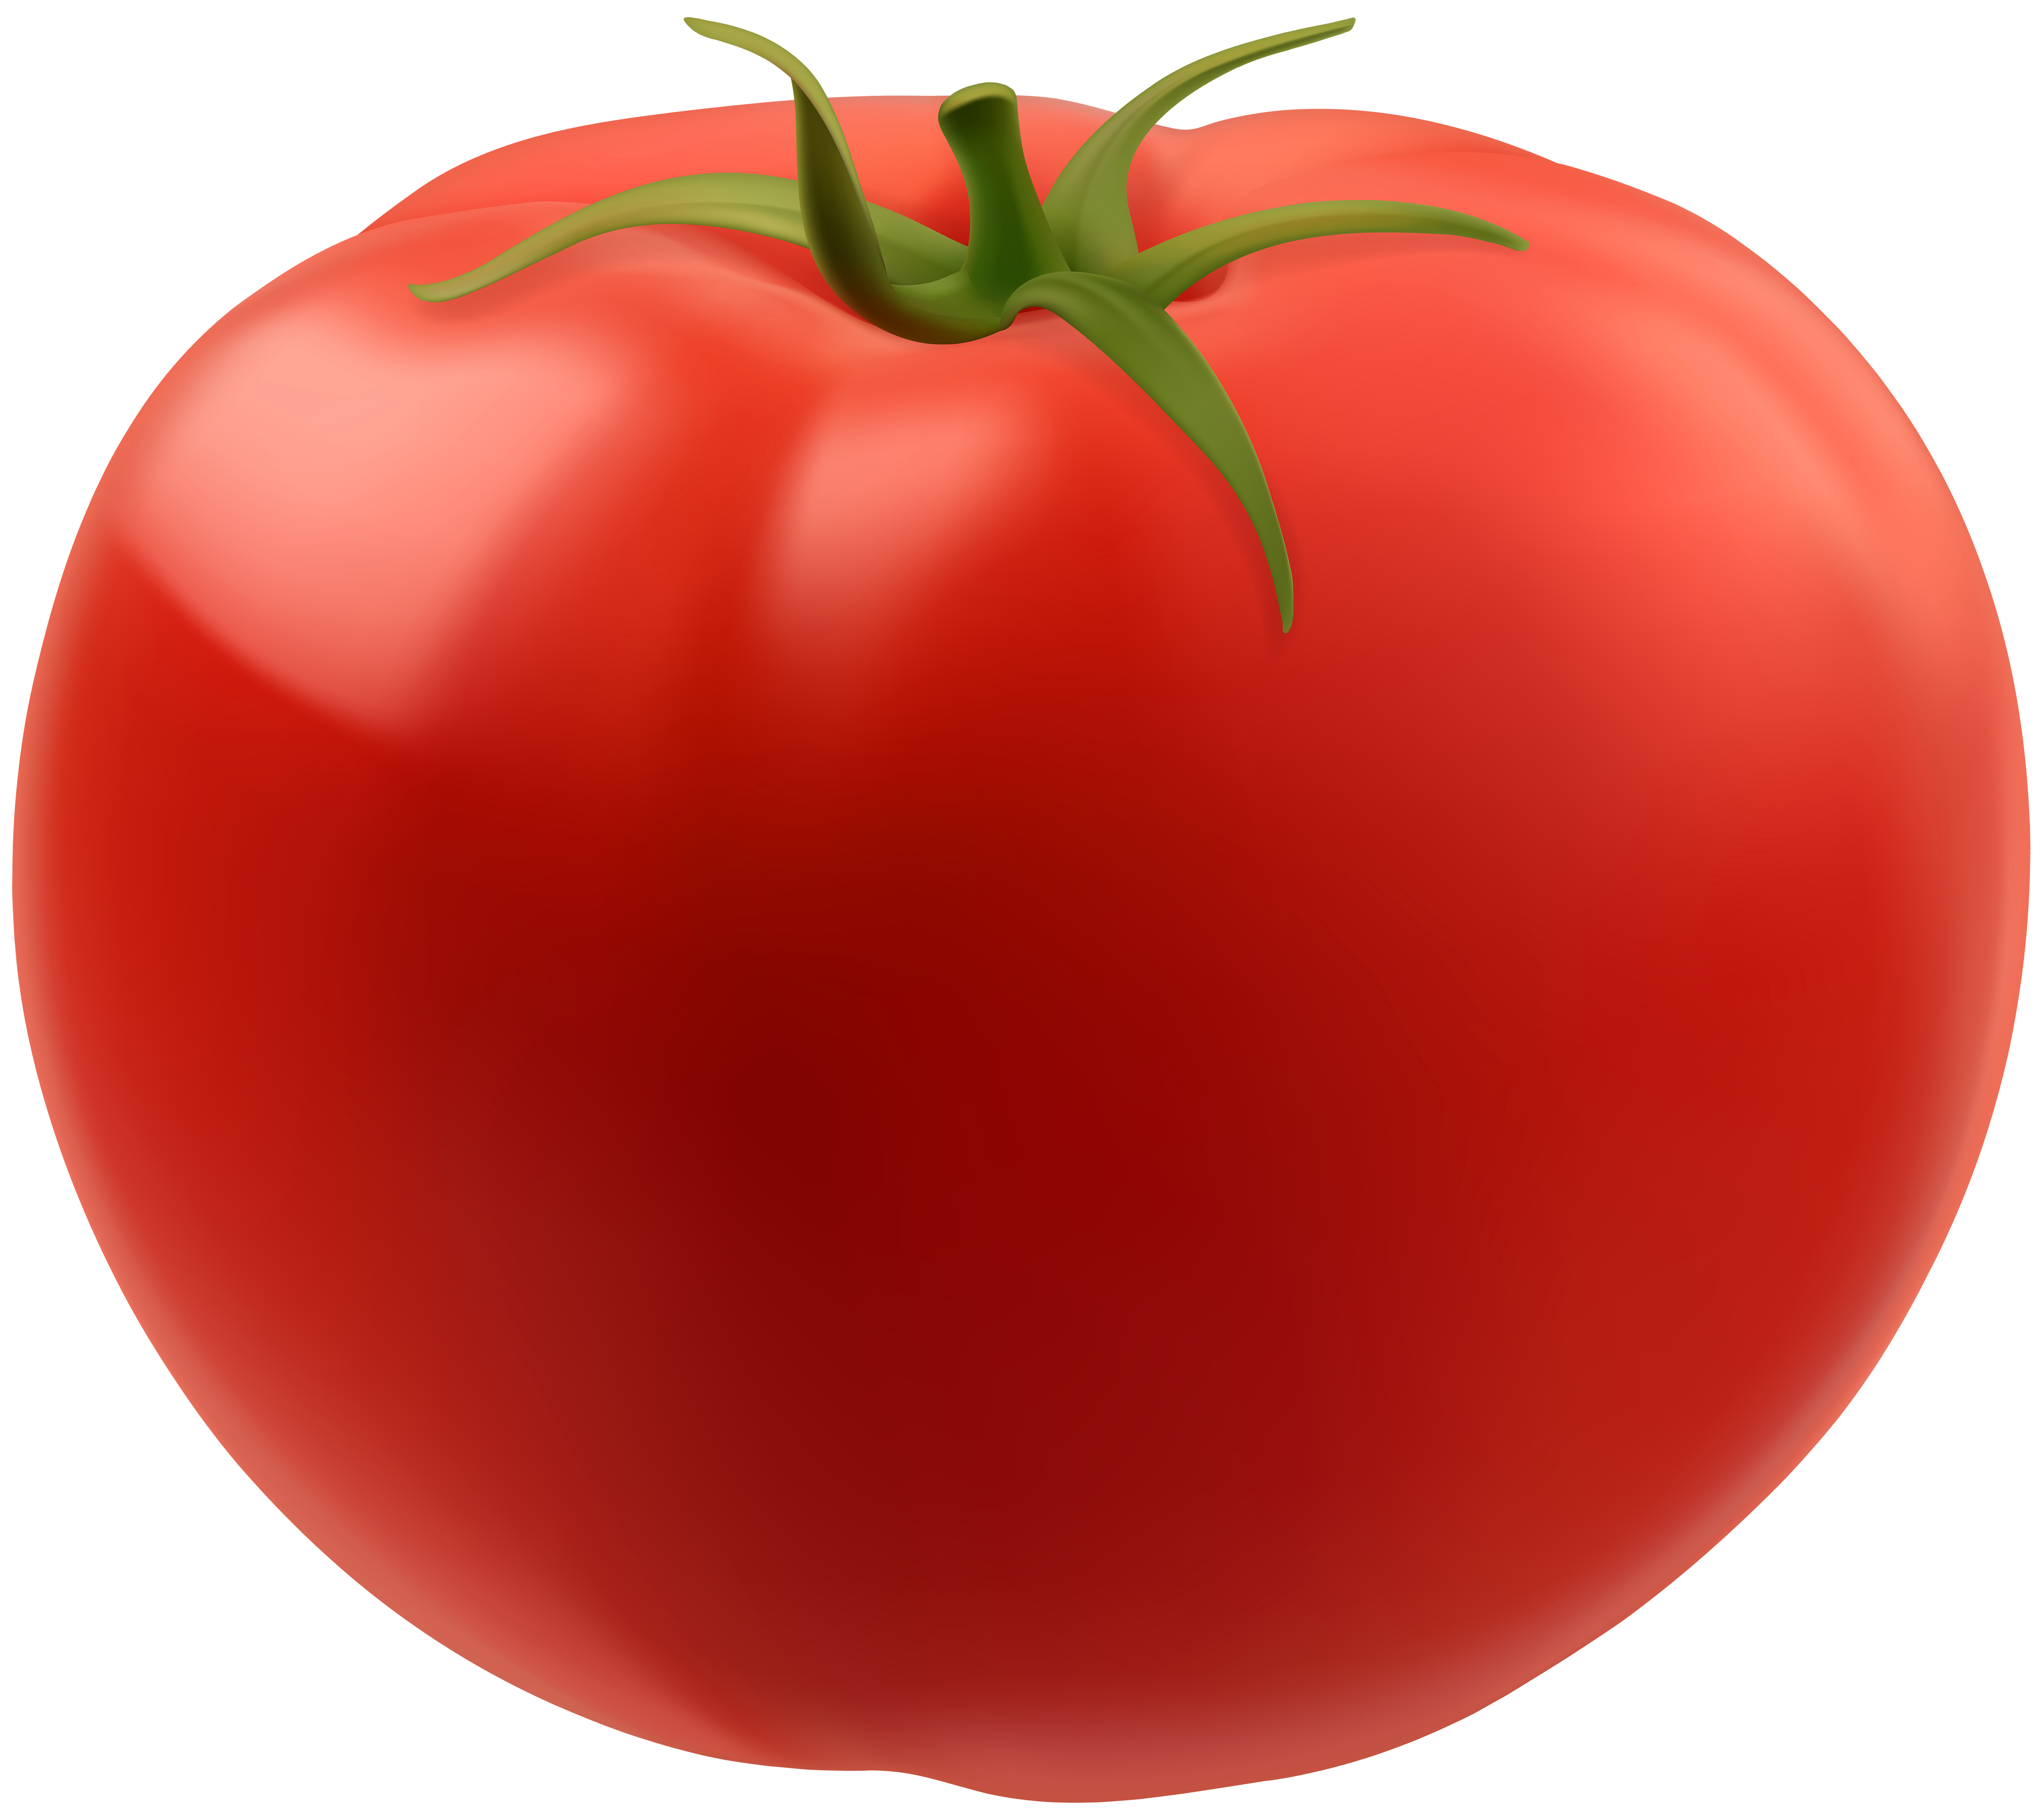 Tomato transparent png image. Tomatoes clipart clear background